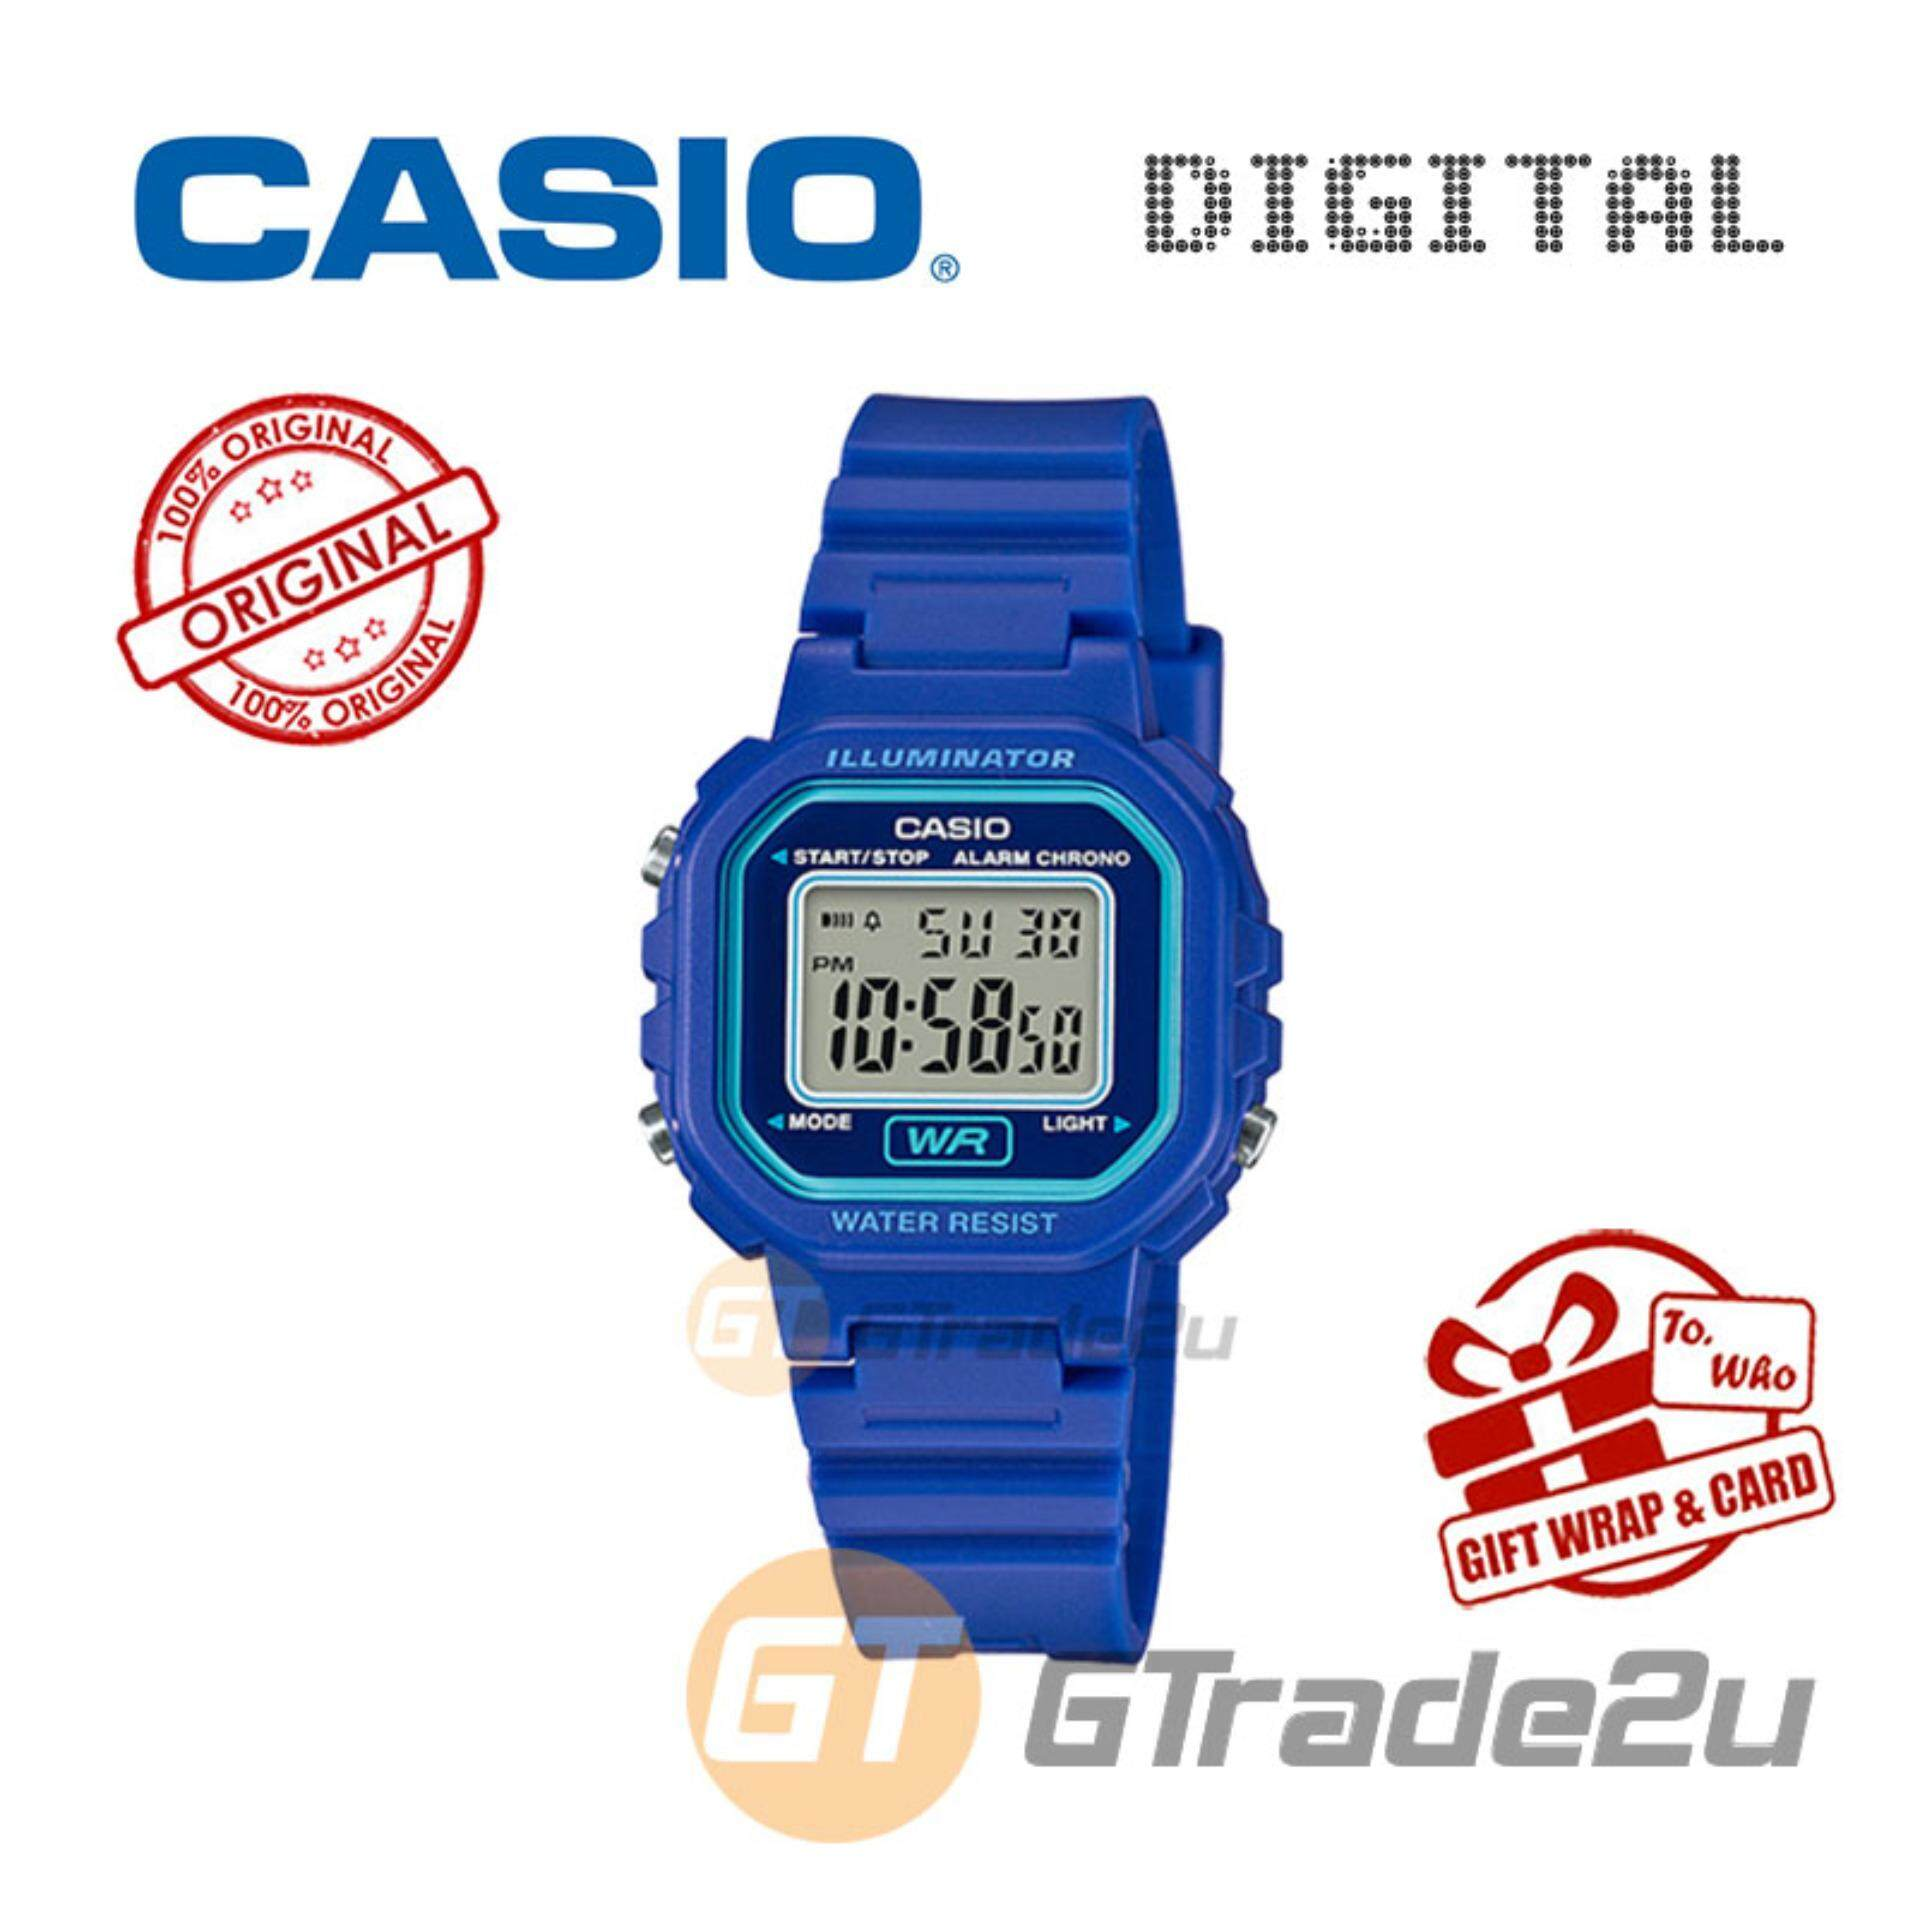 Casio Watches With Best Price At Lazada Malaysia Databank Ca 506 1df Jam Tangan Pria Silver Strap Stainless Steel Kids Ladies La 20wh 2av Digital Watch Small Cute Petit